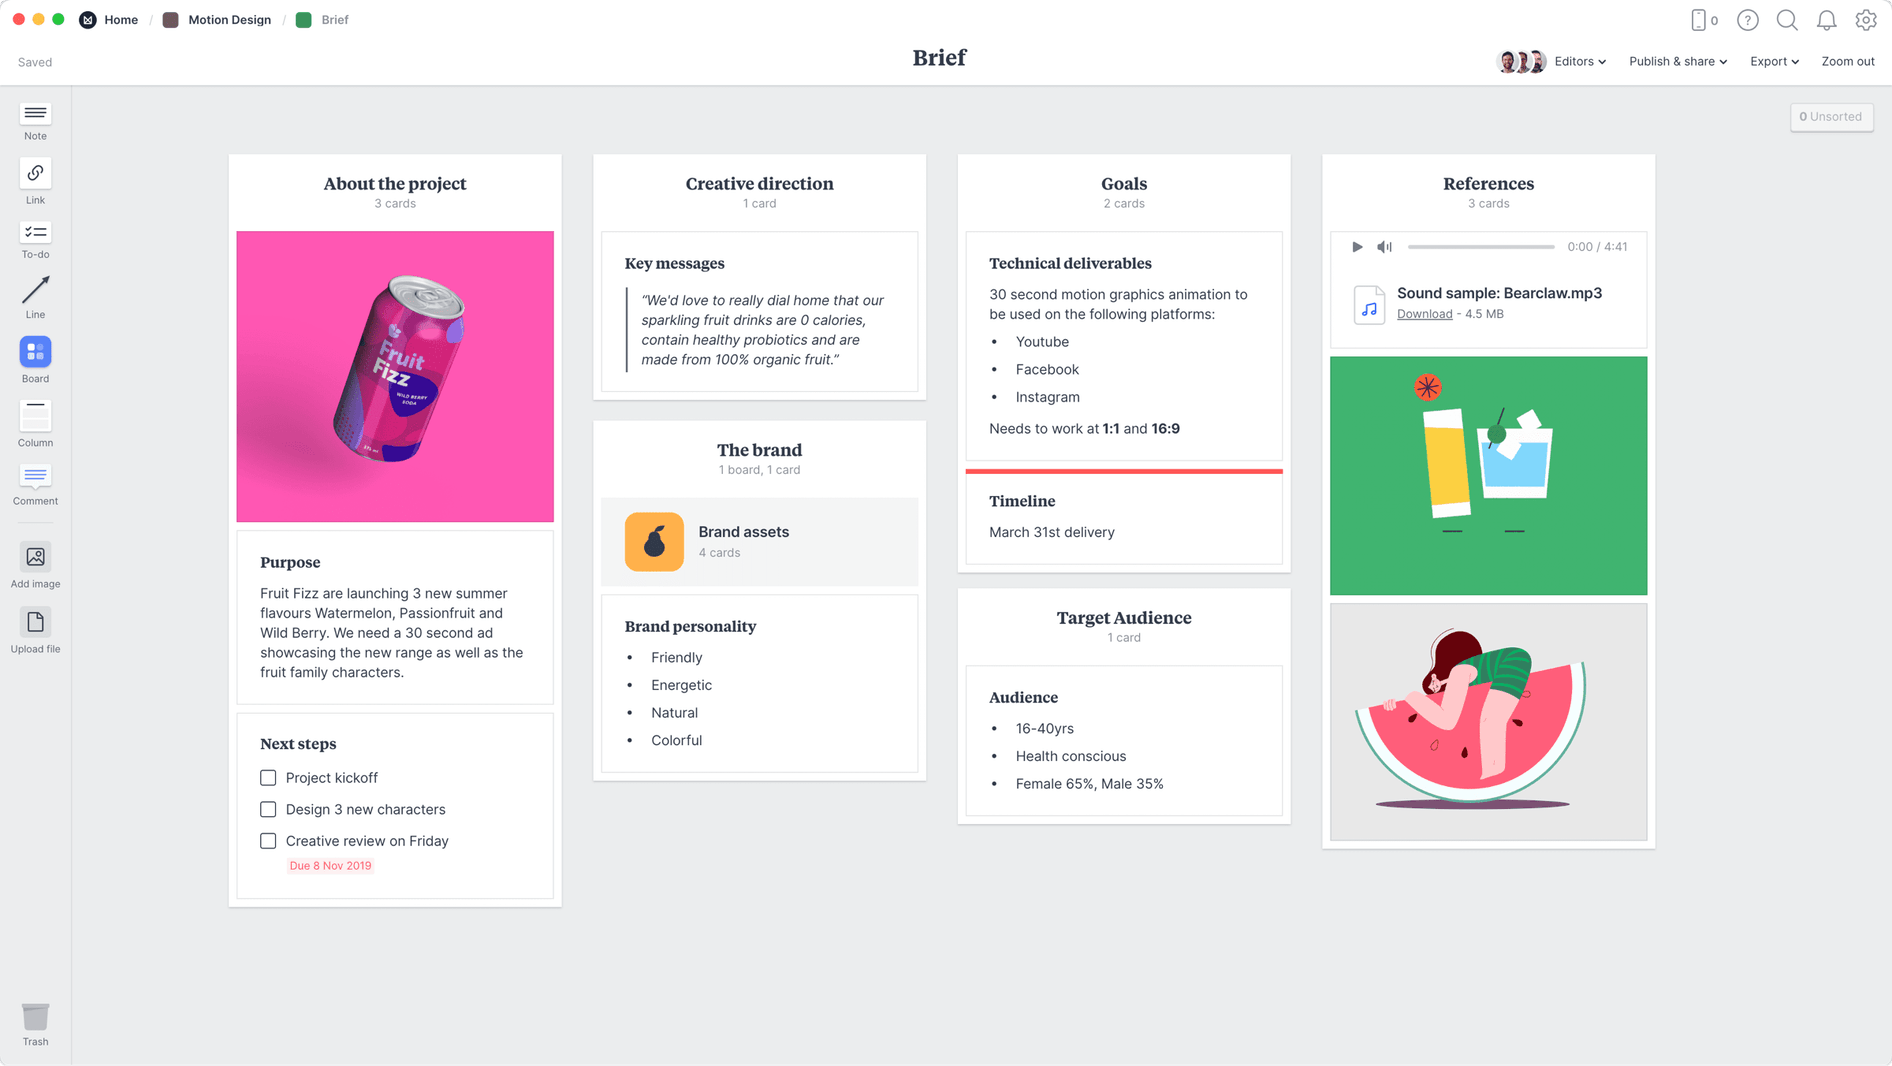 Motion Design Brief Template, within the Milanote app